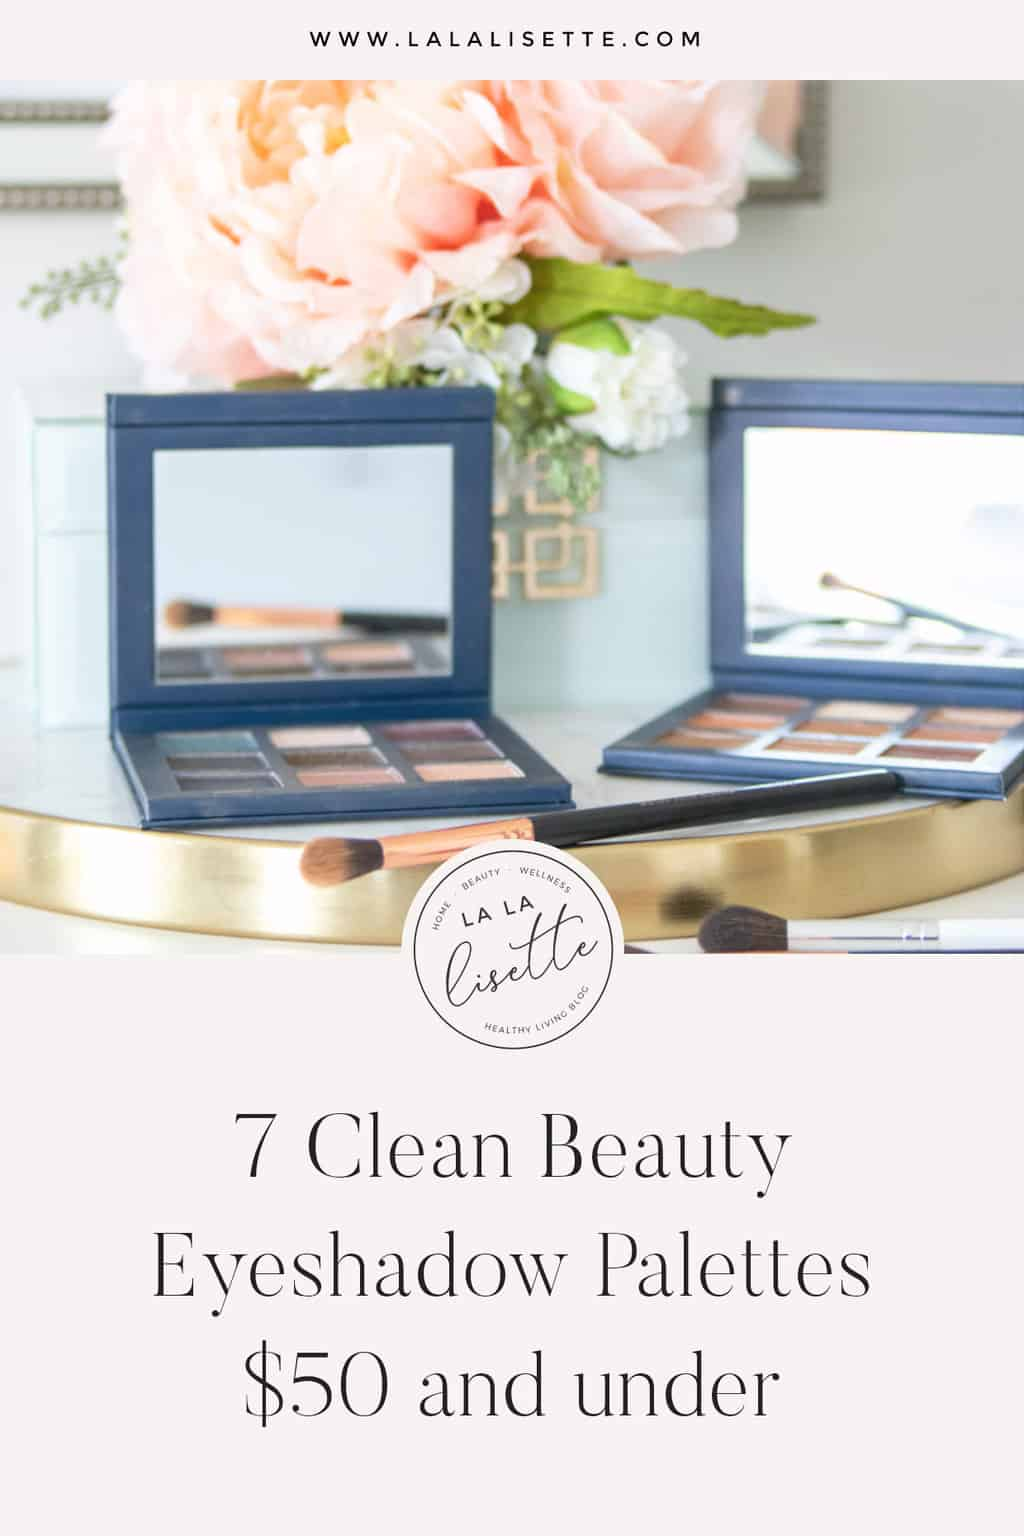 graphic with Beautcounter eyeshadow palettes with text: 7 Clean Eyeshadow Palettes $50 and Under